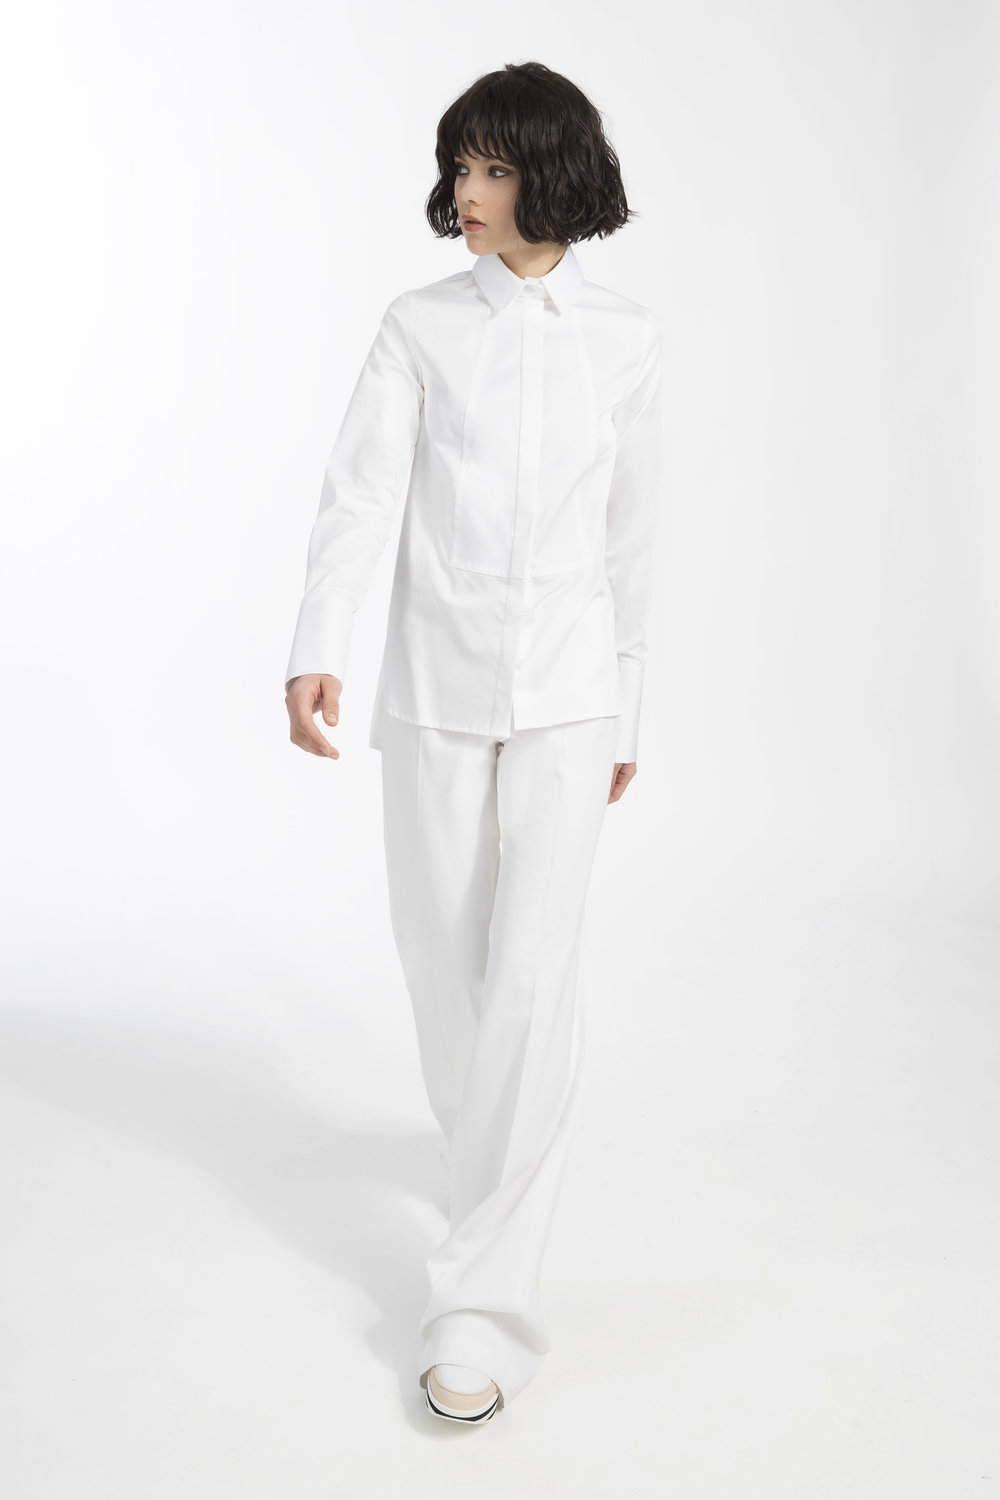 Deena shirt - White popeline cotton shirt